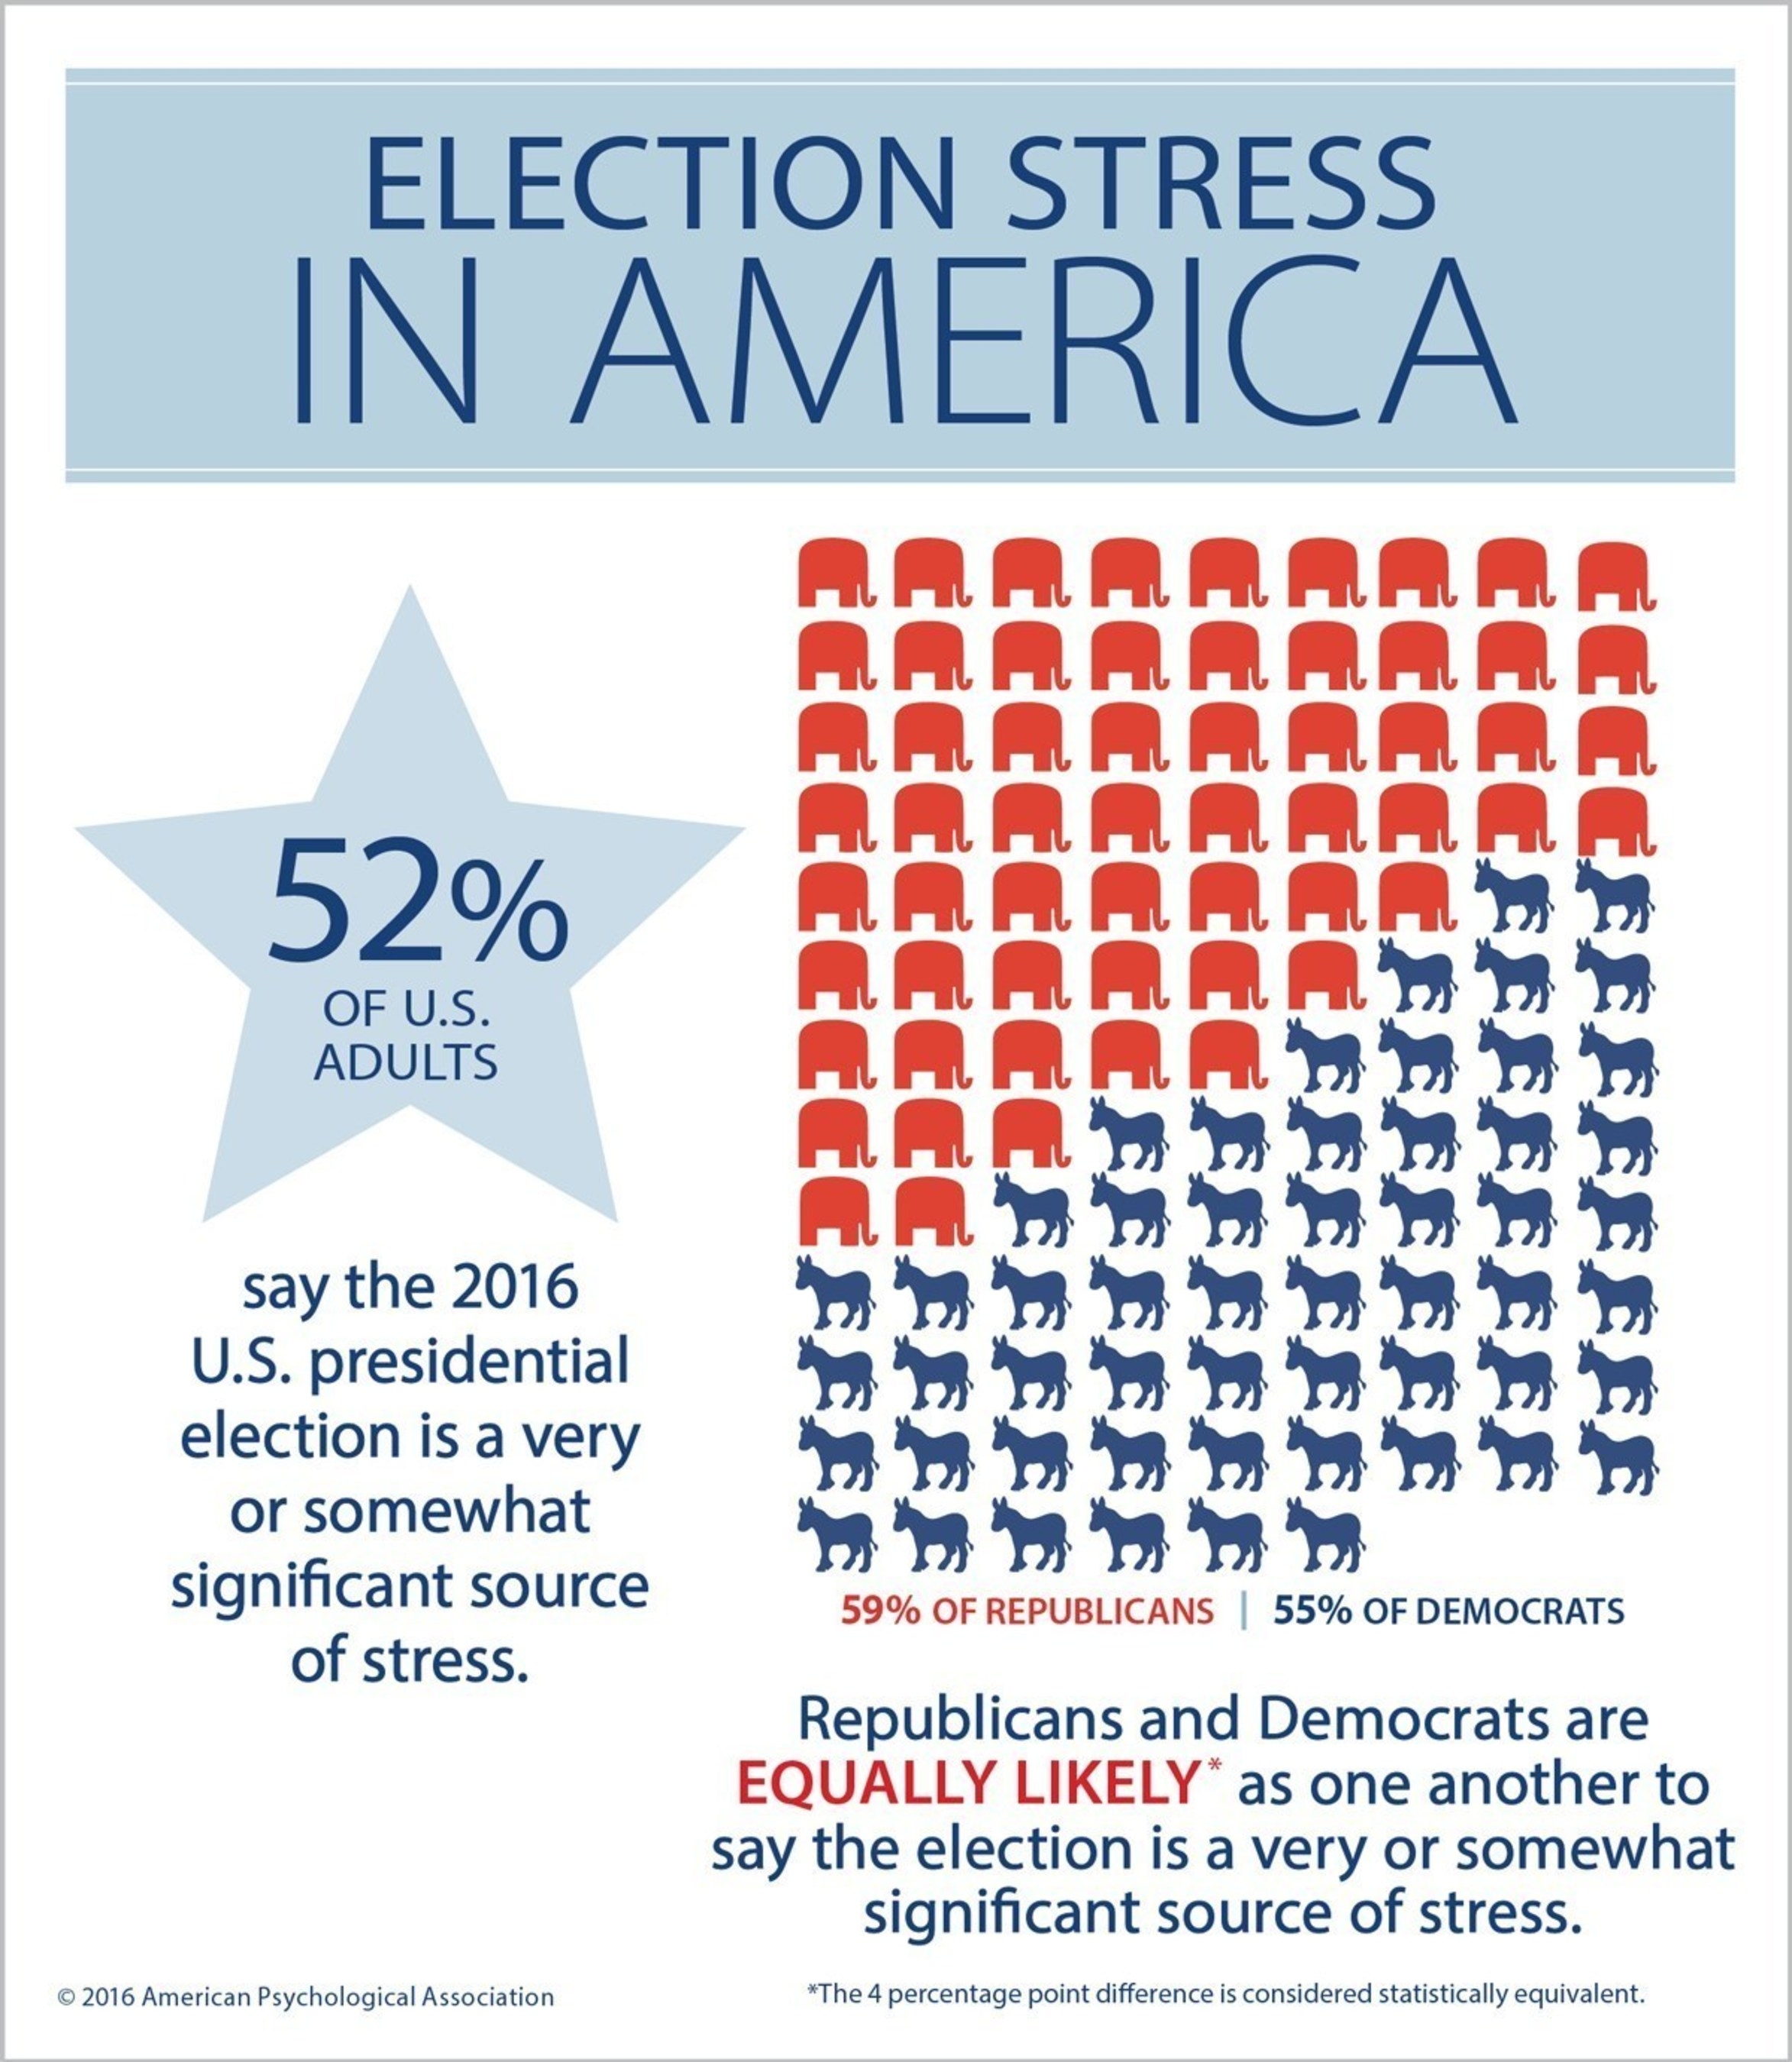 Republicans and Democrats are equally likely as one another to say the election is a significant source of stress.